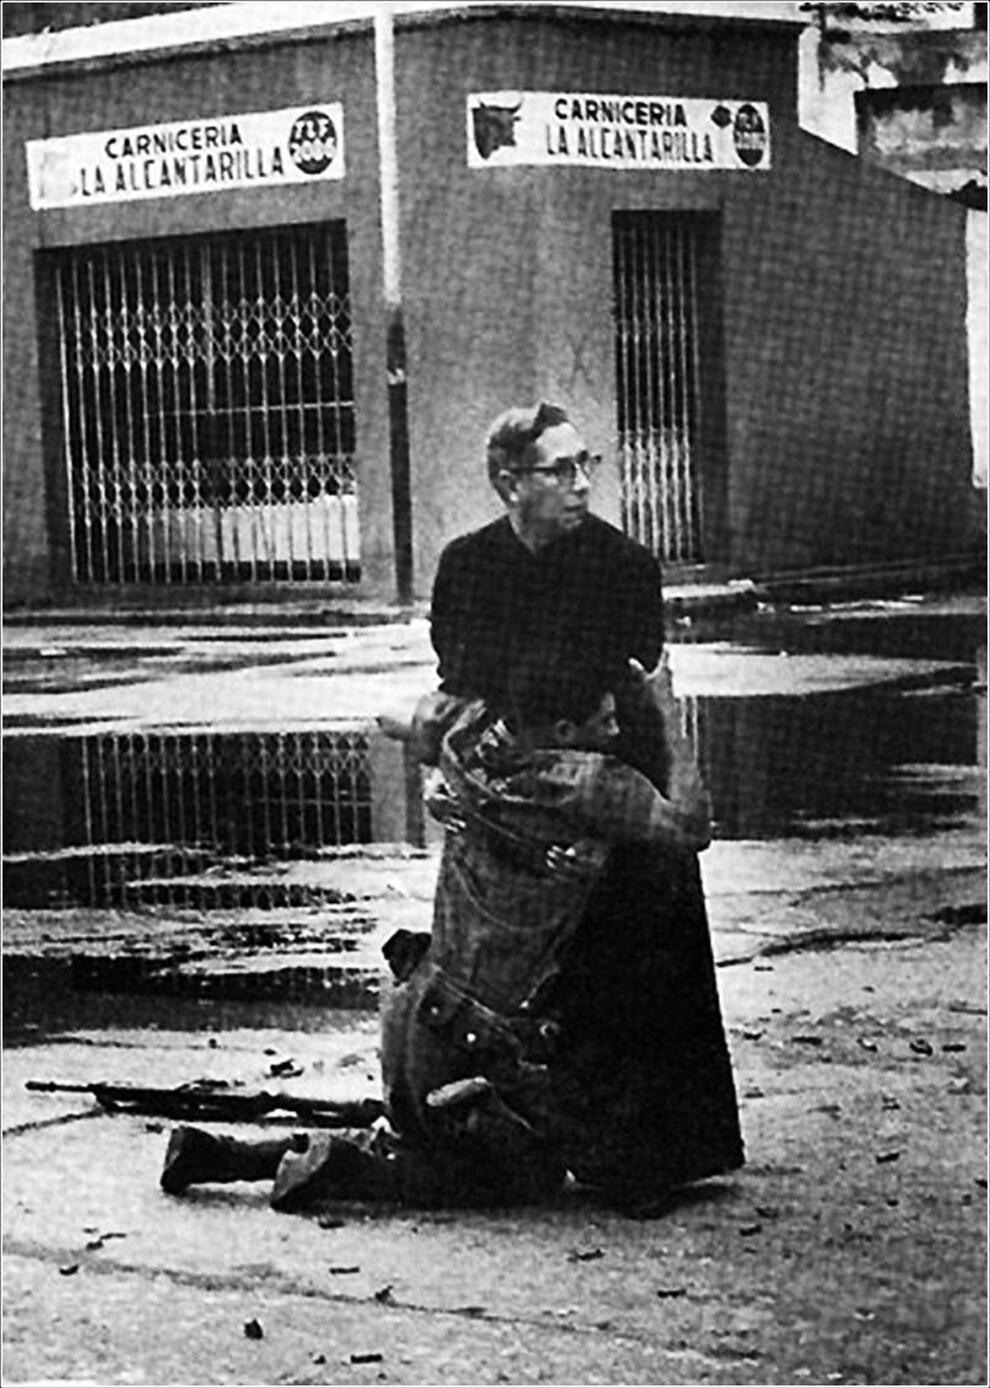 Navy chaplain Luis Padillo gives last rites to a soldier wounded by sniper fire during a revolt in Venezuela, 1962 http://t.co/VSscXaPgYI